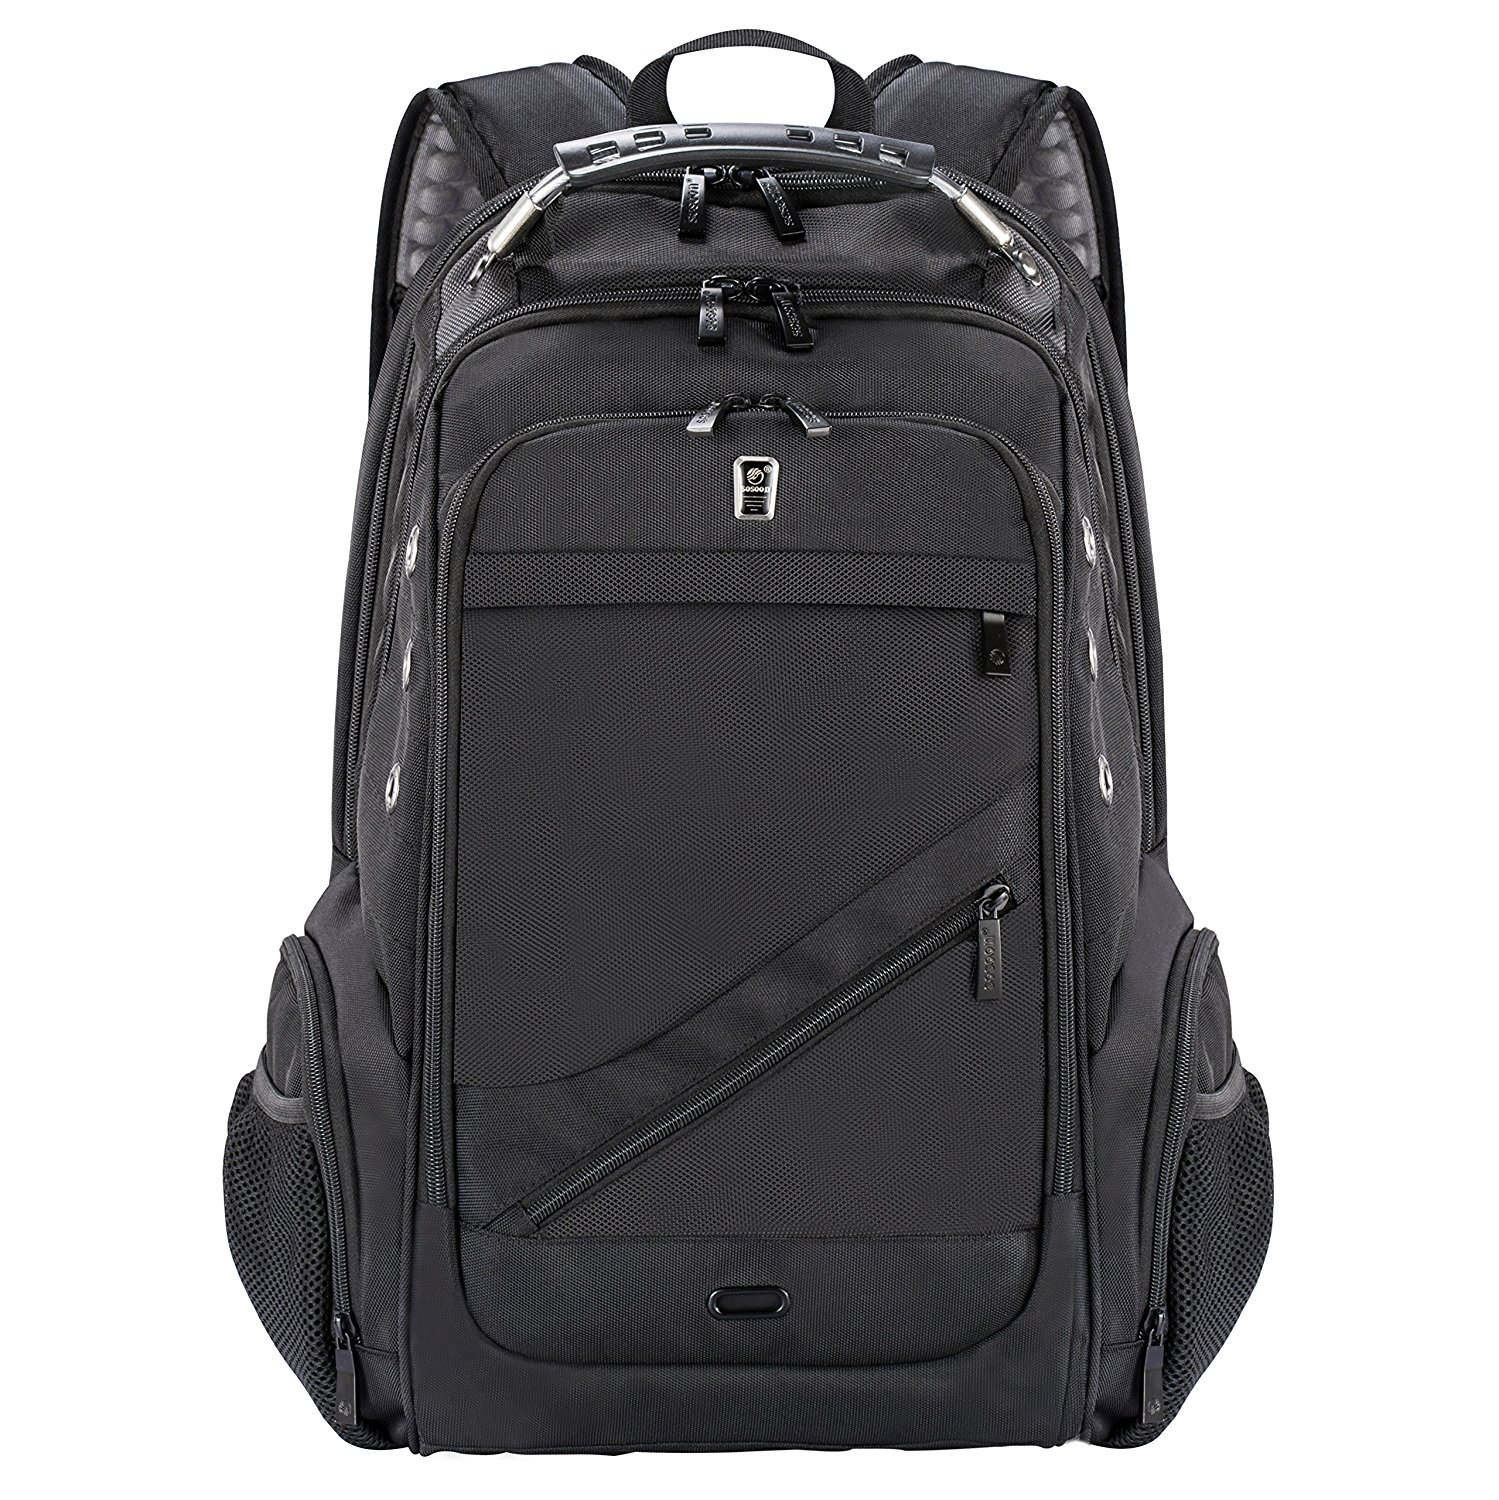 Laptop Backpack, Business Anti-Theft Travel Backpack with USB Charging Headphone Port, Water Resistant Large Compartment College School Computer Bag for Men and Women for 15.6 Inch Laptop and Notebook